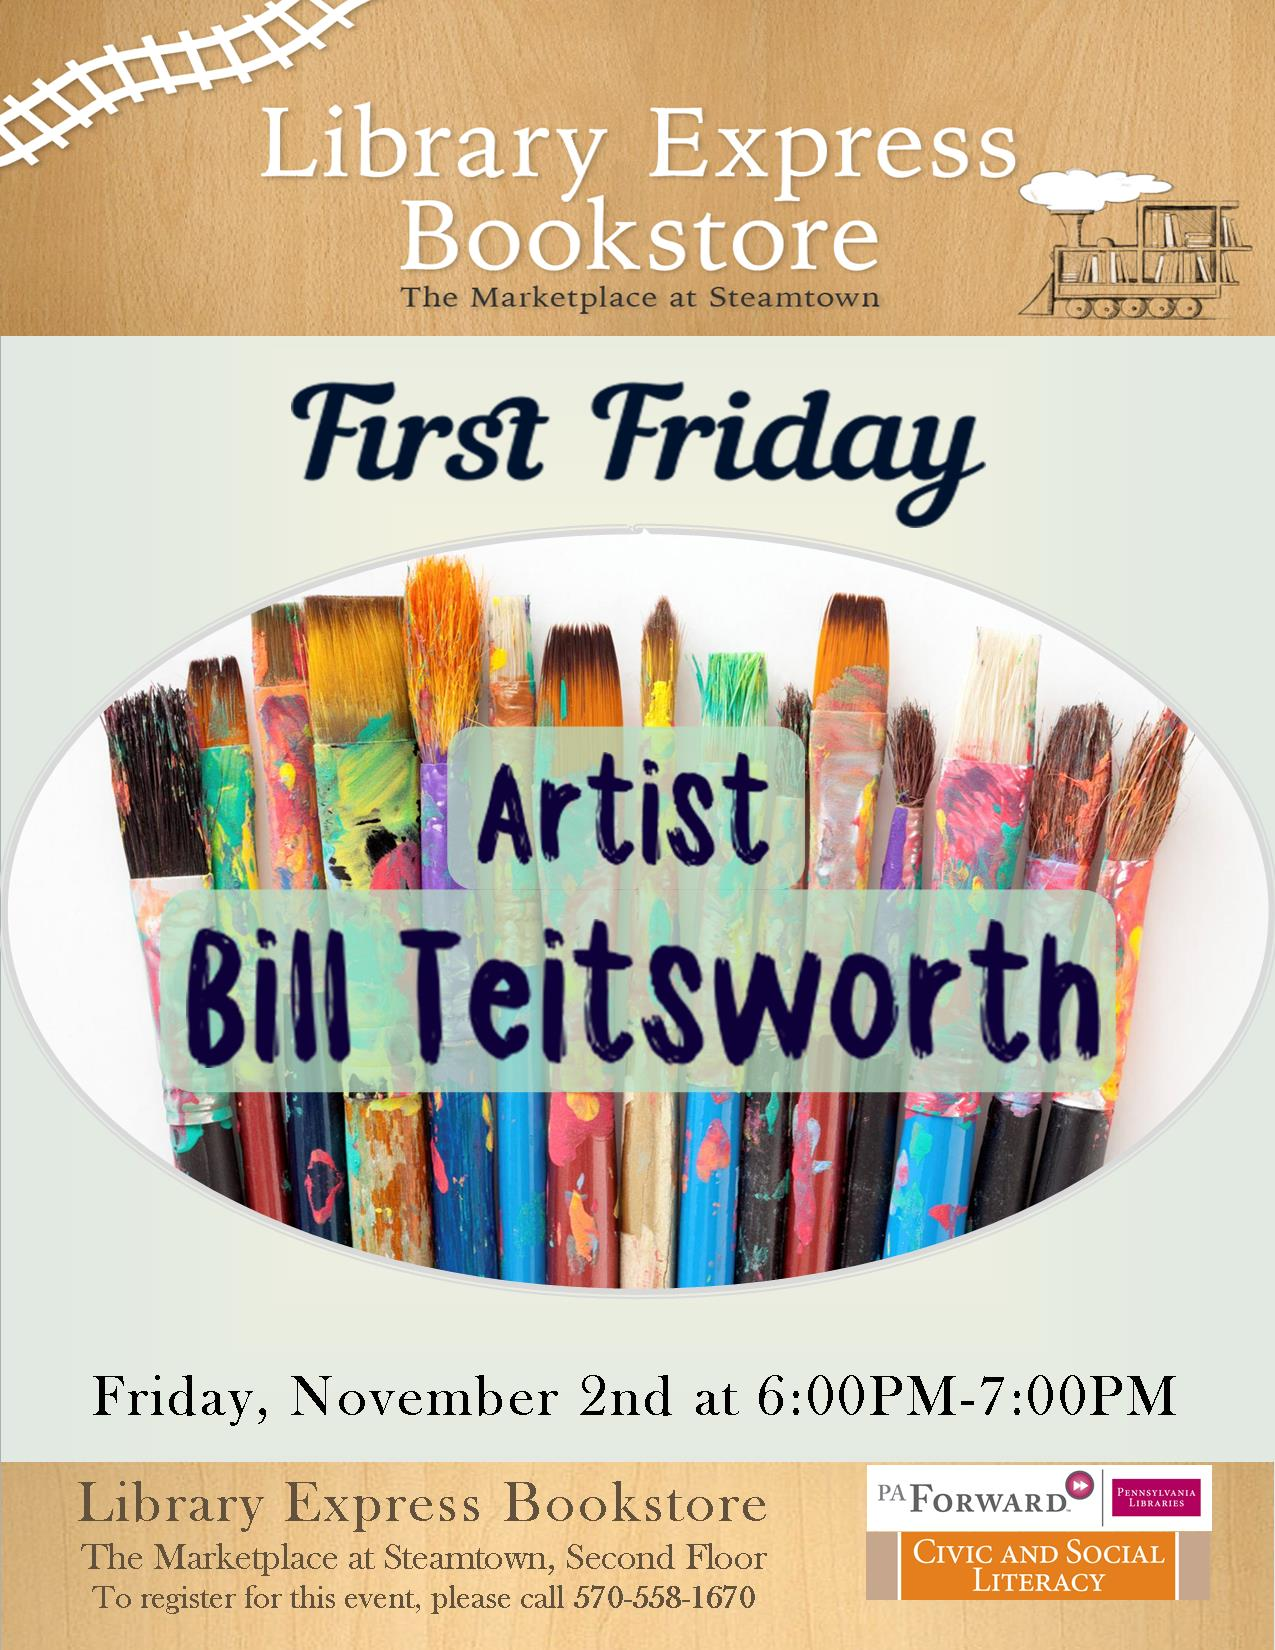 First Friday: Artist Bill Teitsworth